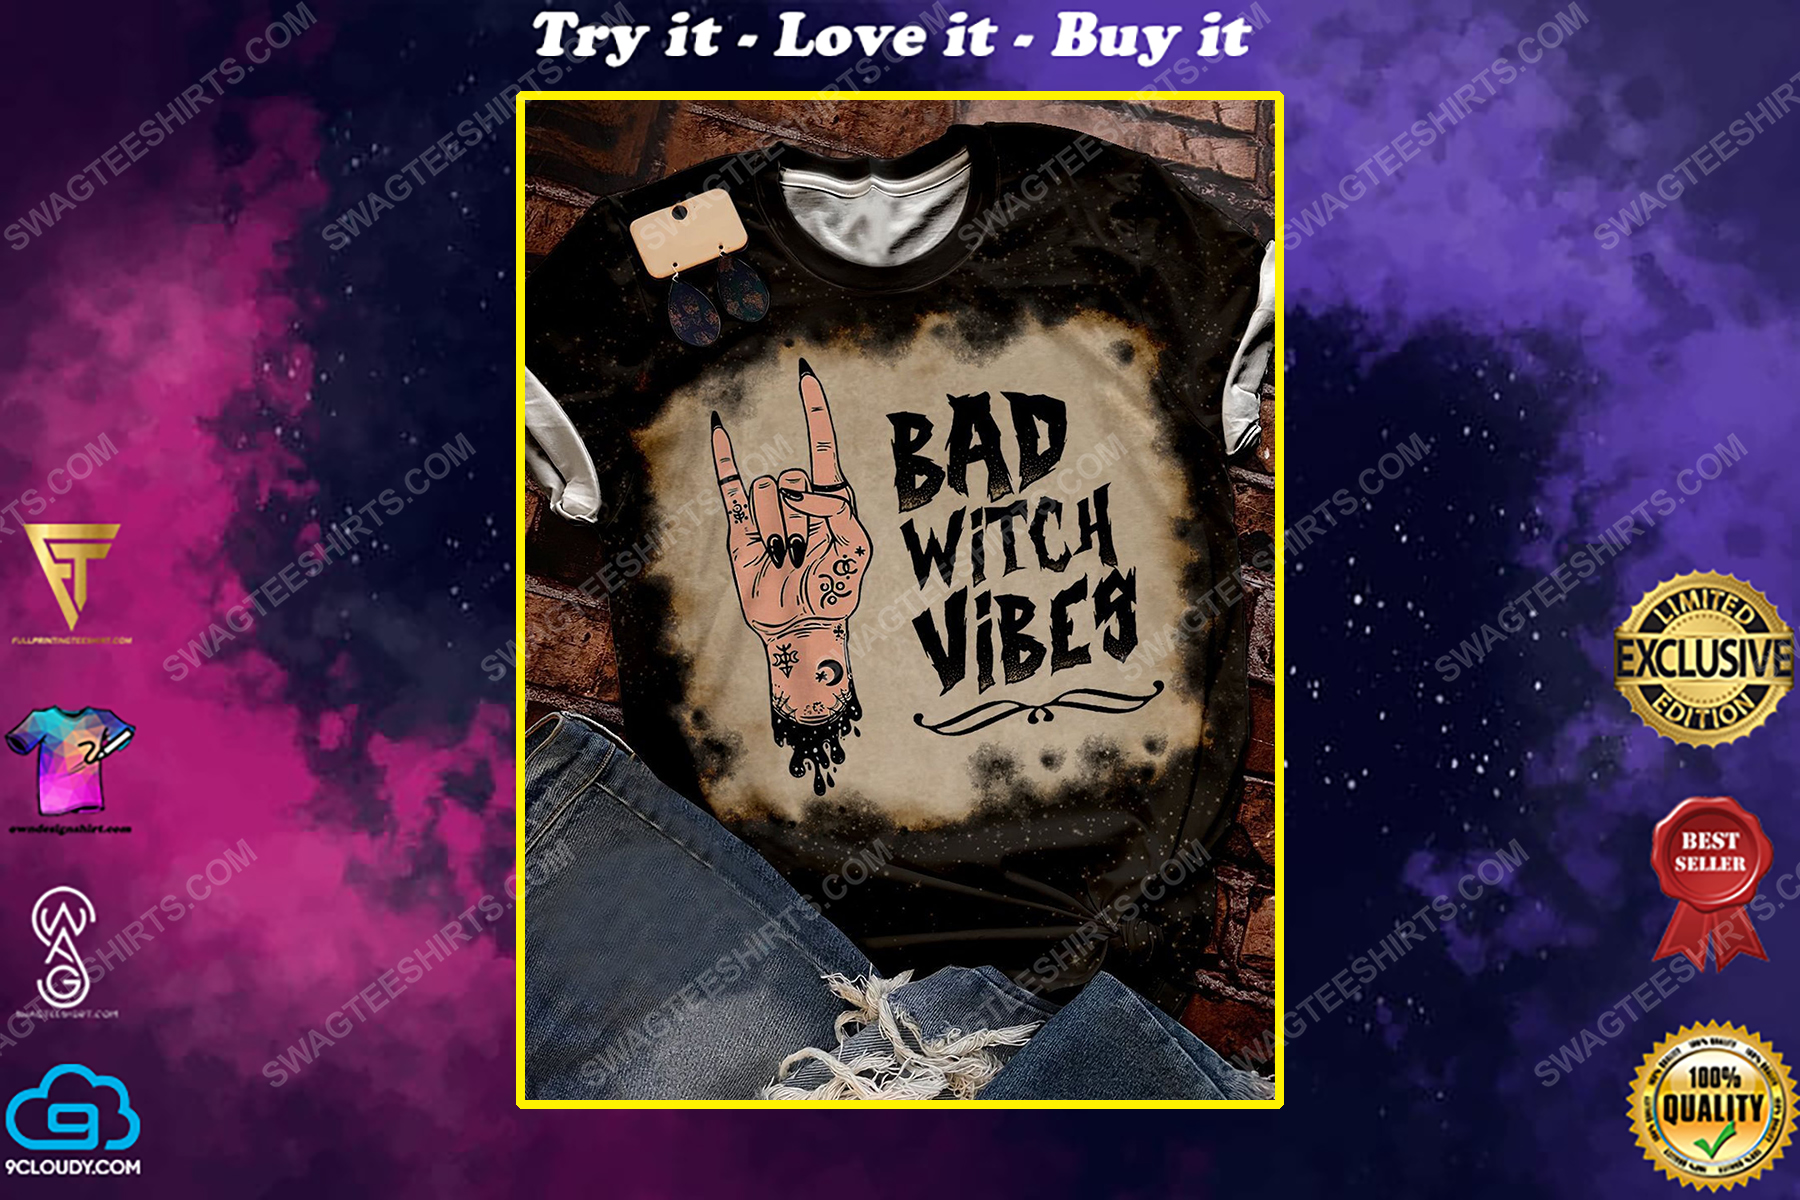 Halloween night bad witch vibes bleached shirt